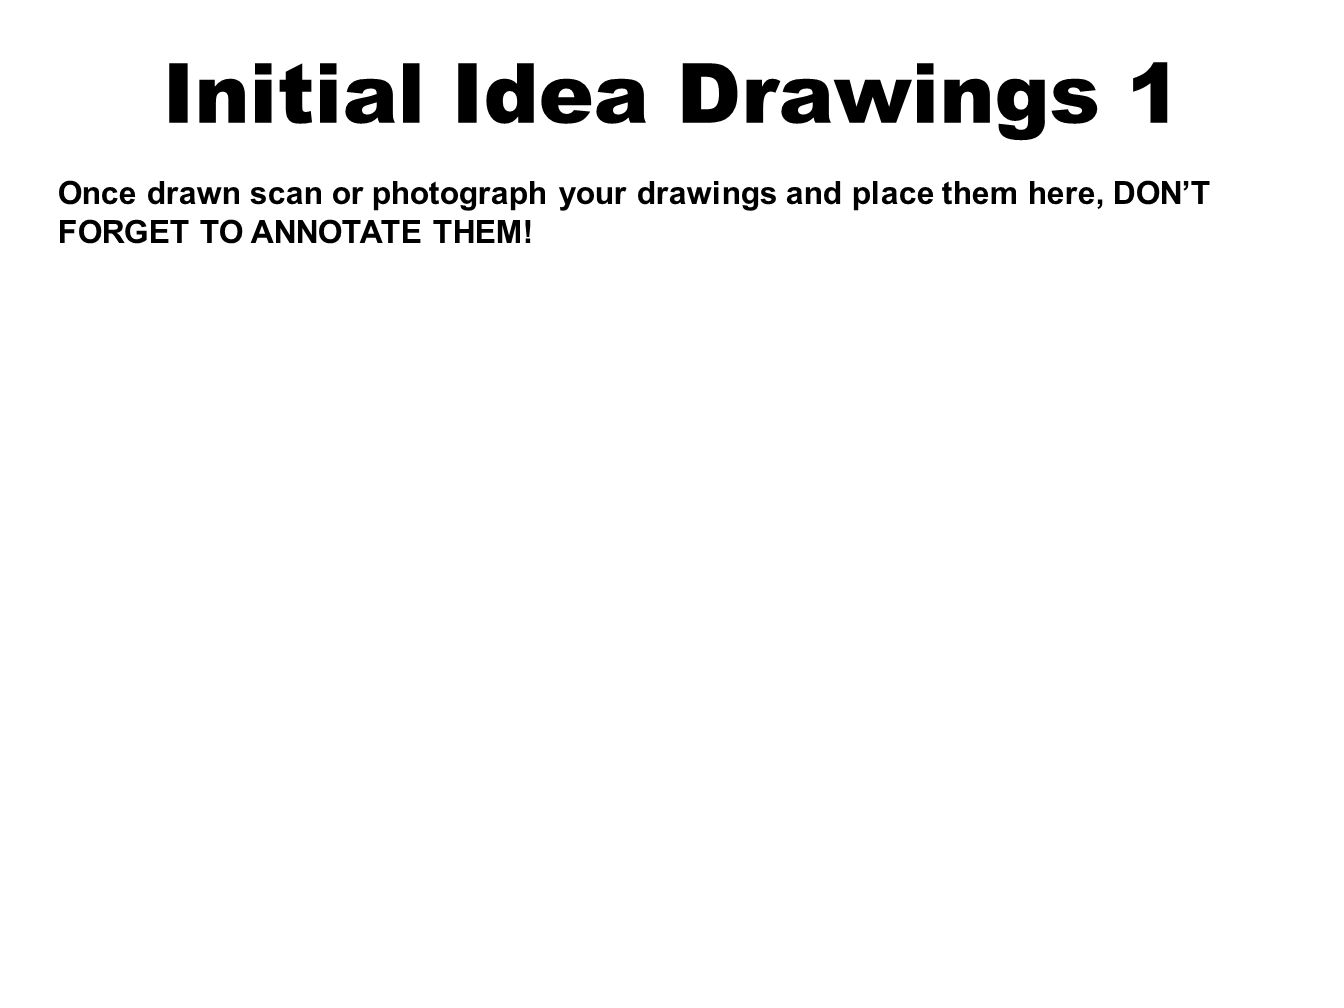 Initial Idea Drawings 1 Once drawn scan or photograph your drawings and place them here, DON'T FORGET TO ANNOTATE THEM!